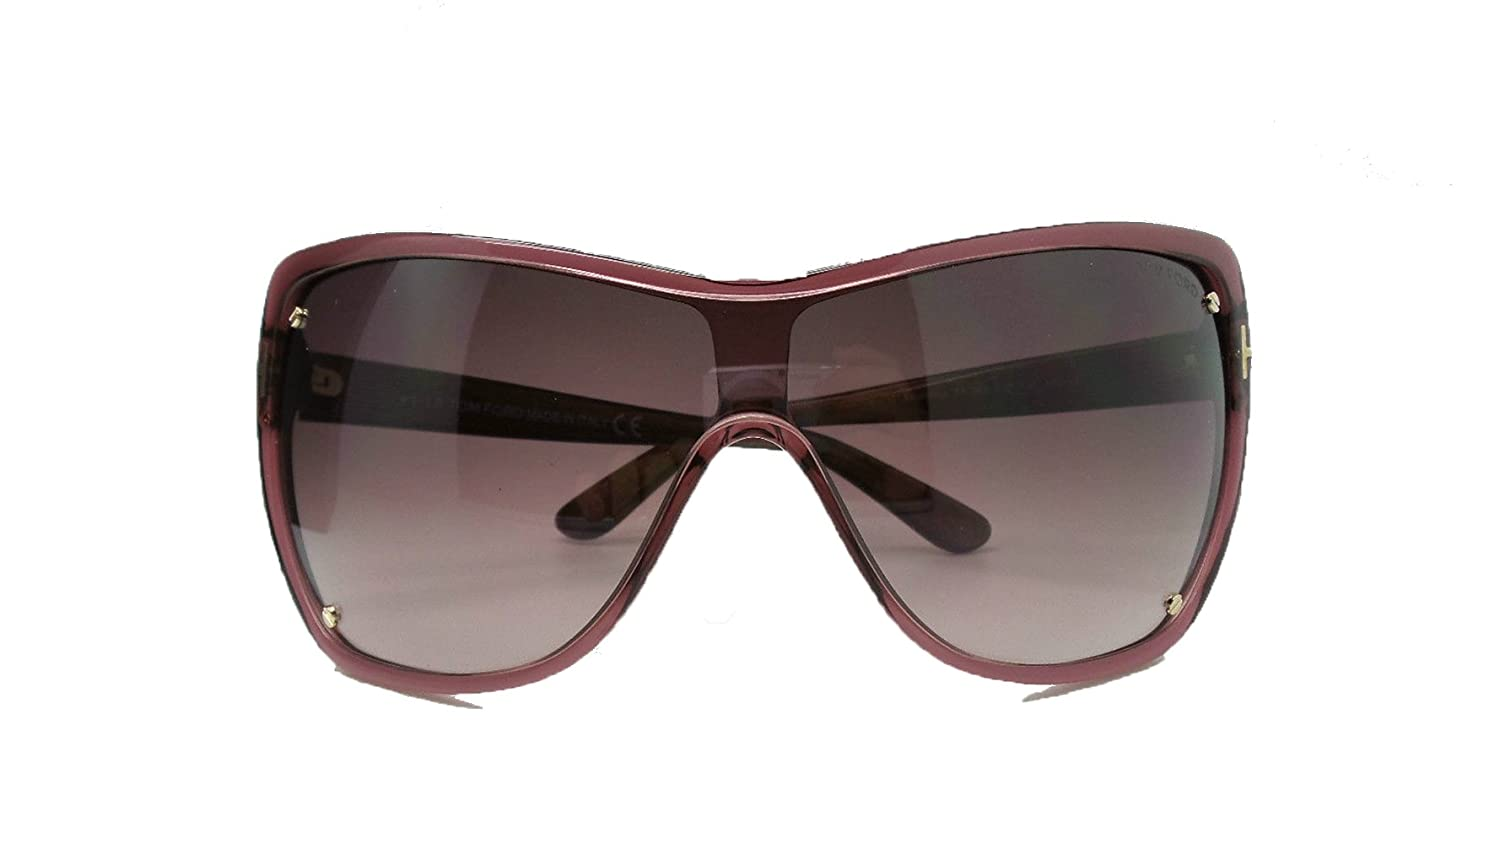 beb8f2e2f00 Amazon.com  TOM FORD TF363 Ekaterina Sunglasses Transparent Wine W plump  Gradient  Clothing